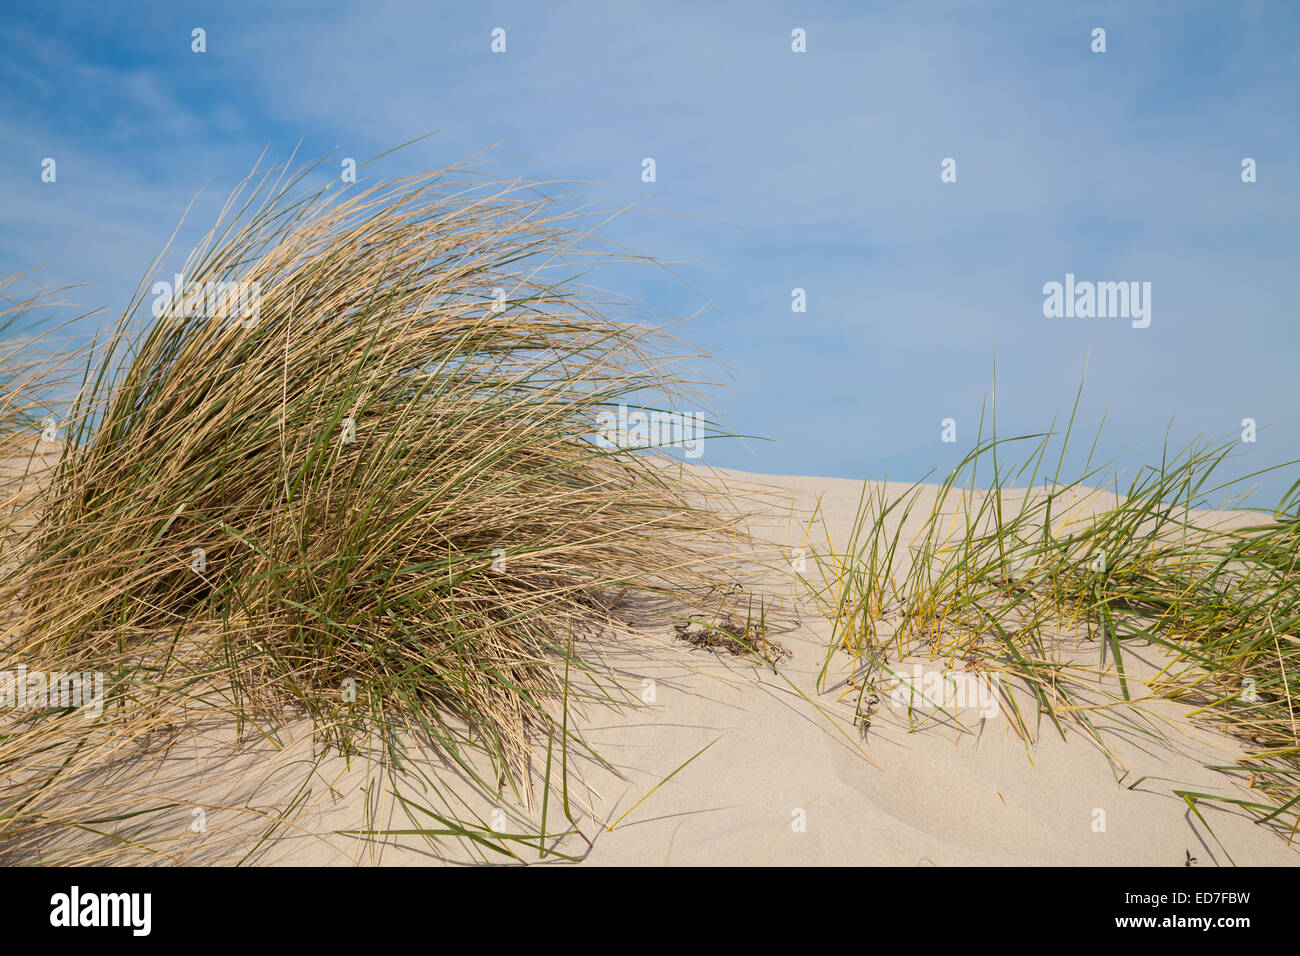 dune with grass at baltic sea - Stock Image